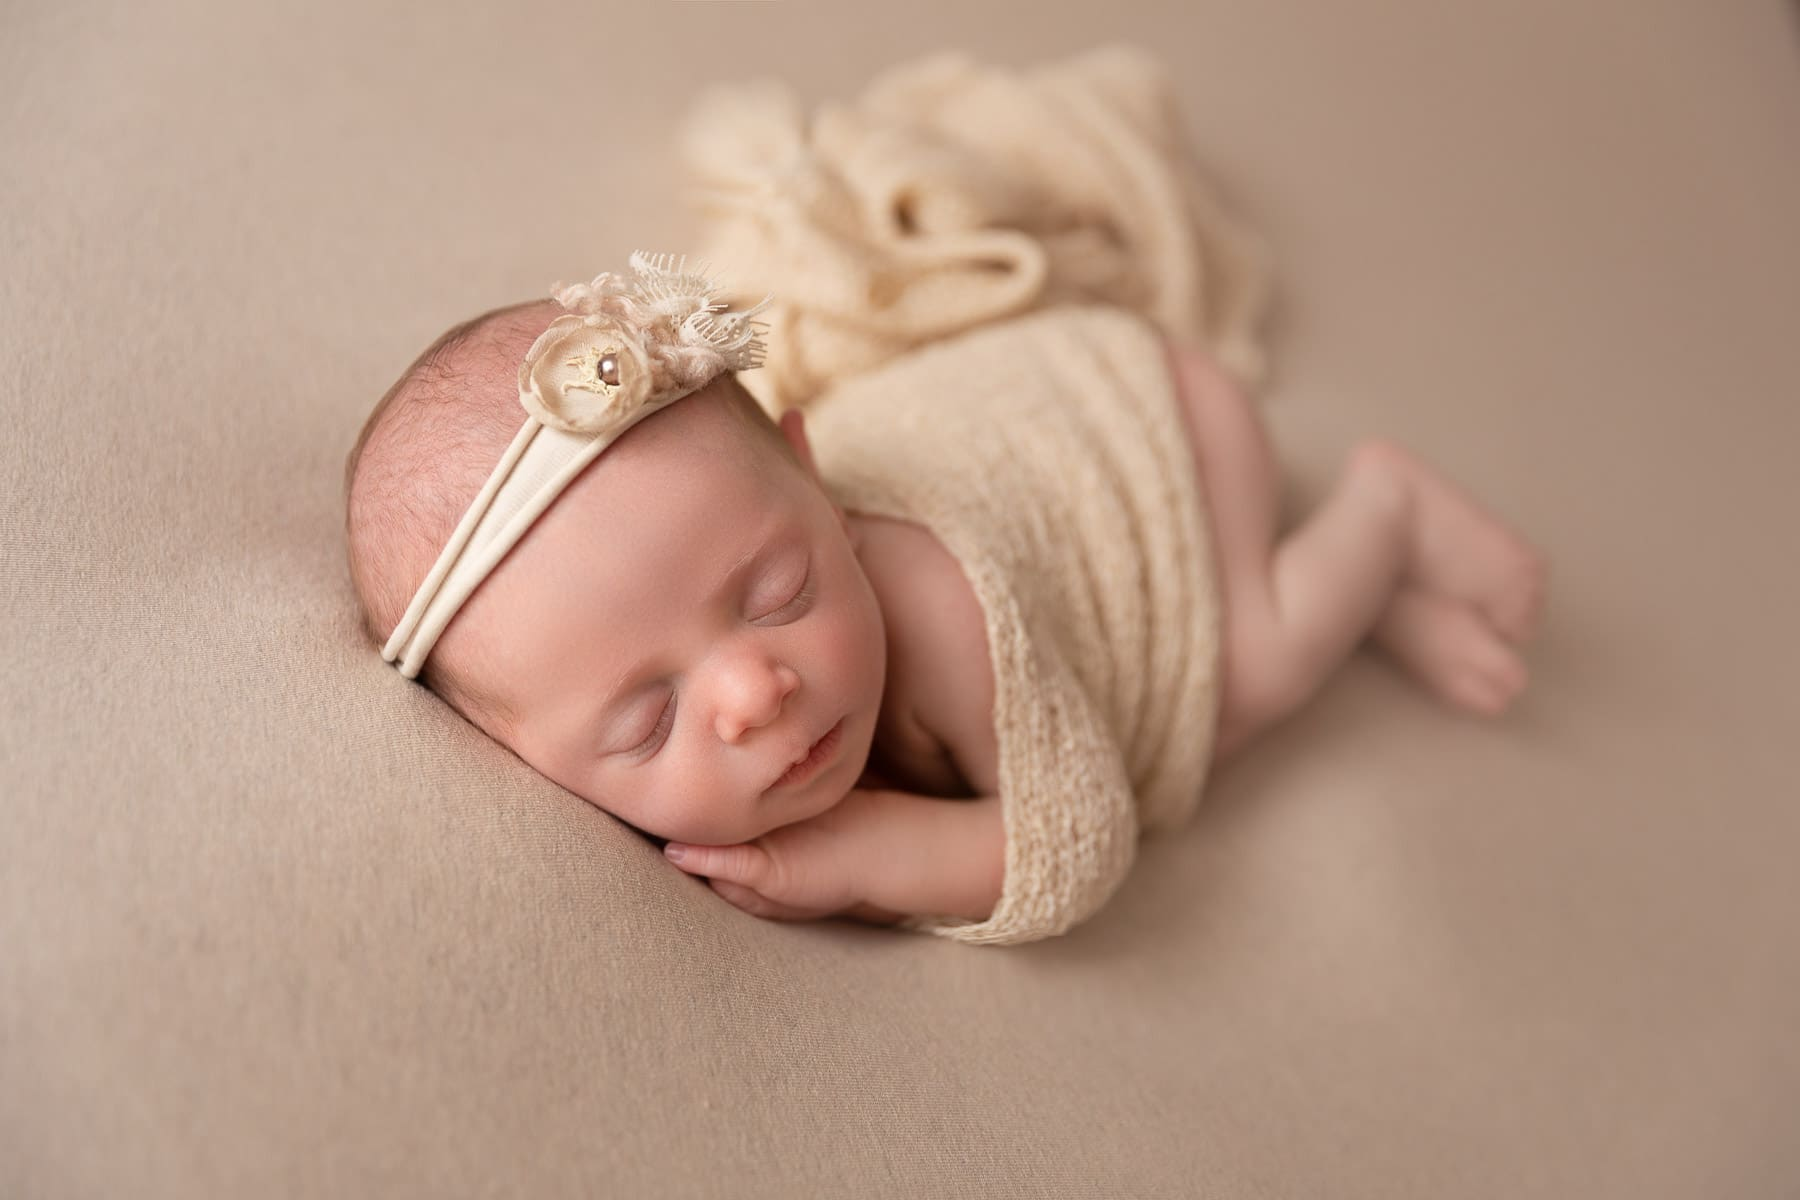 KRISTINA RECHE Petit Monde WORKSHOP FOTOGRAFIA NEWBORN 13114 - Newborn Workshop